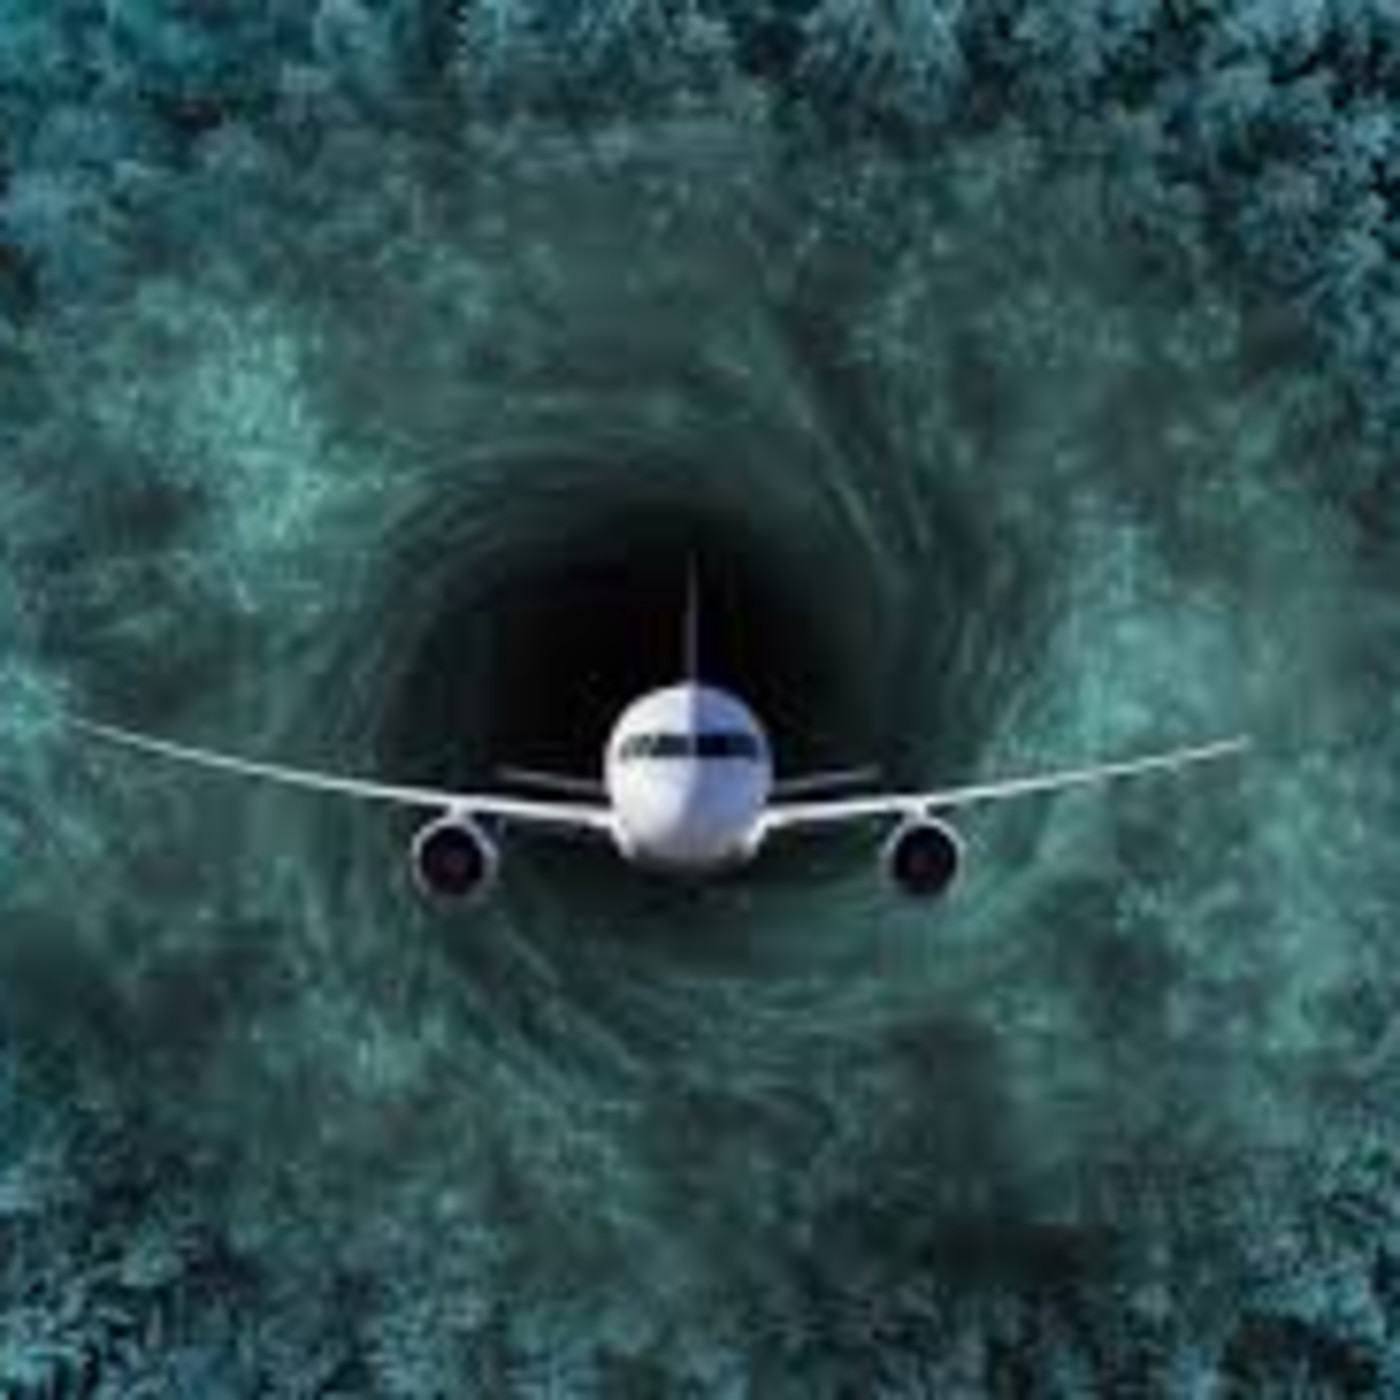 Episode 6 Black Holes and Planes